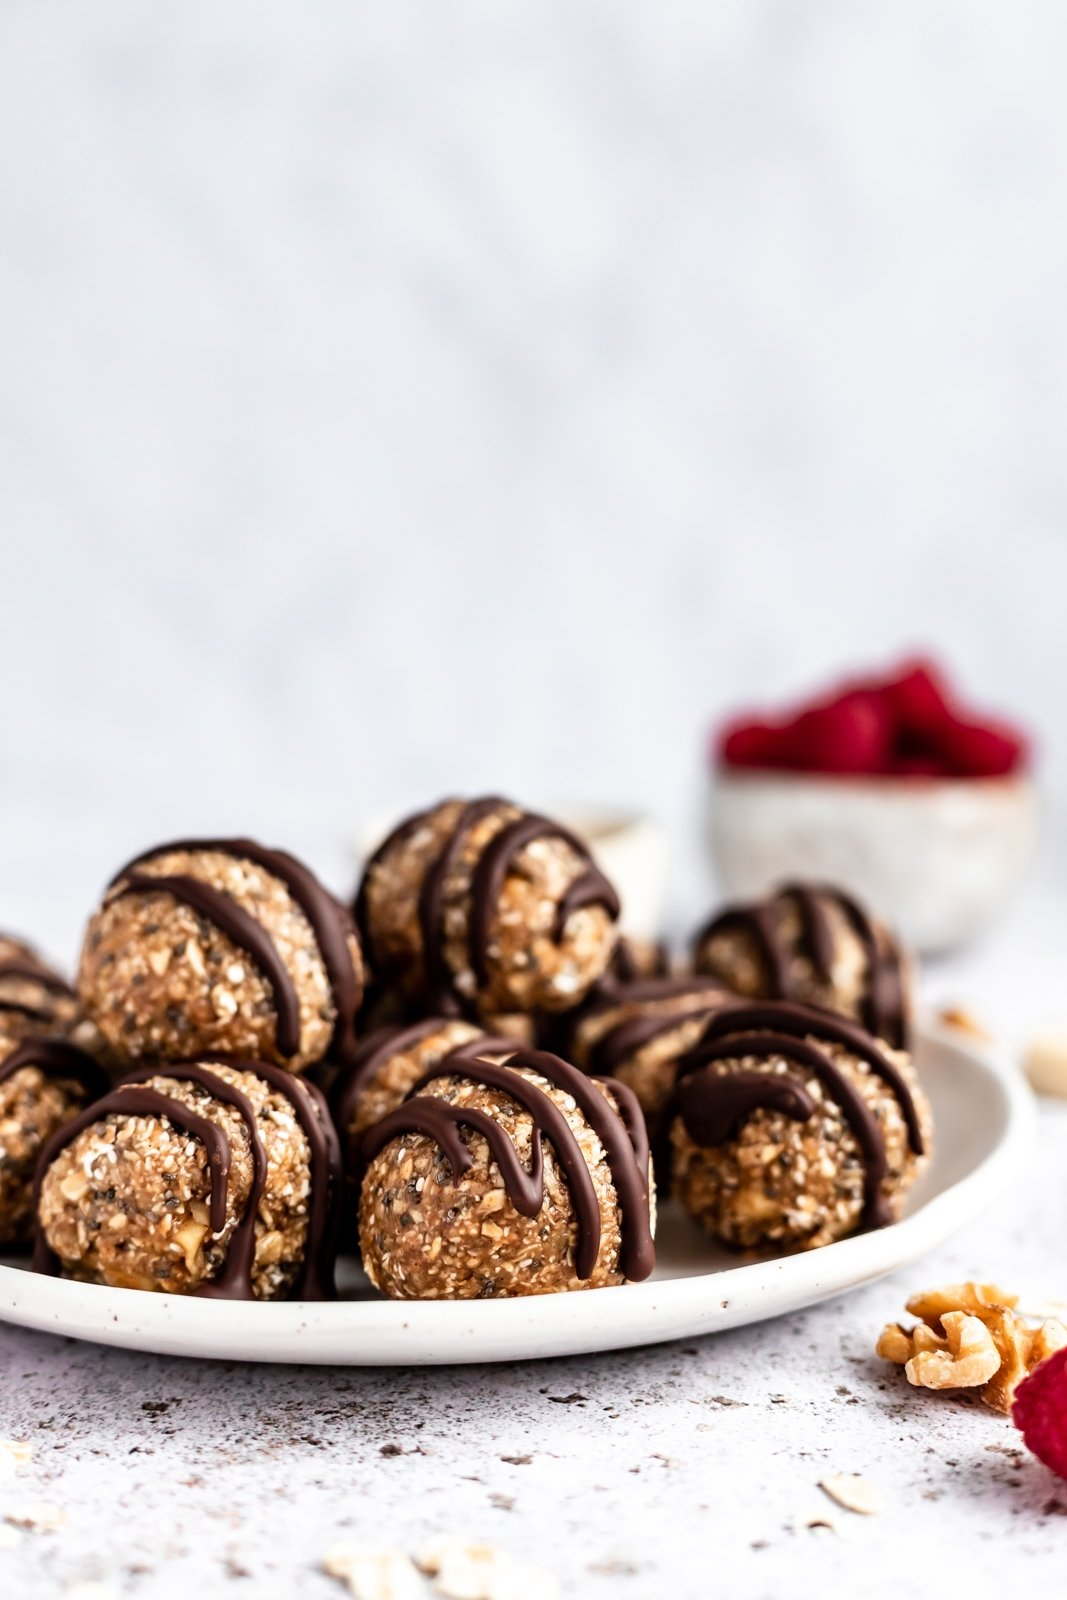 easy no bake chia banana bread energy bites on a plate